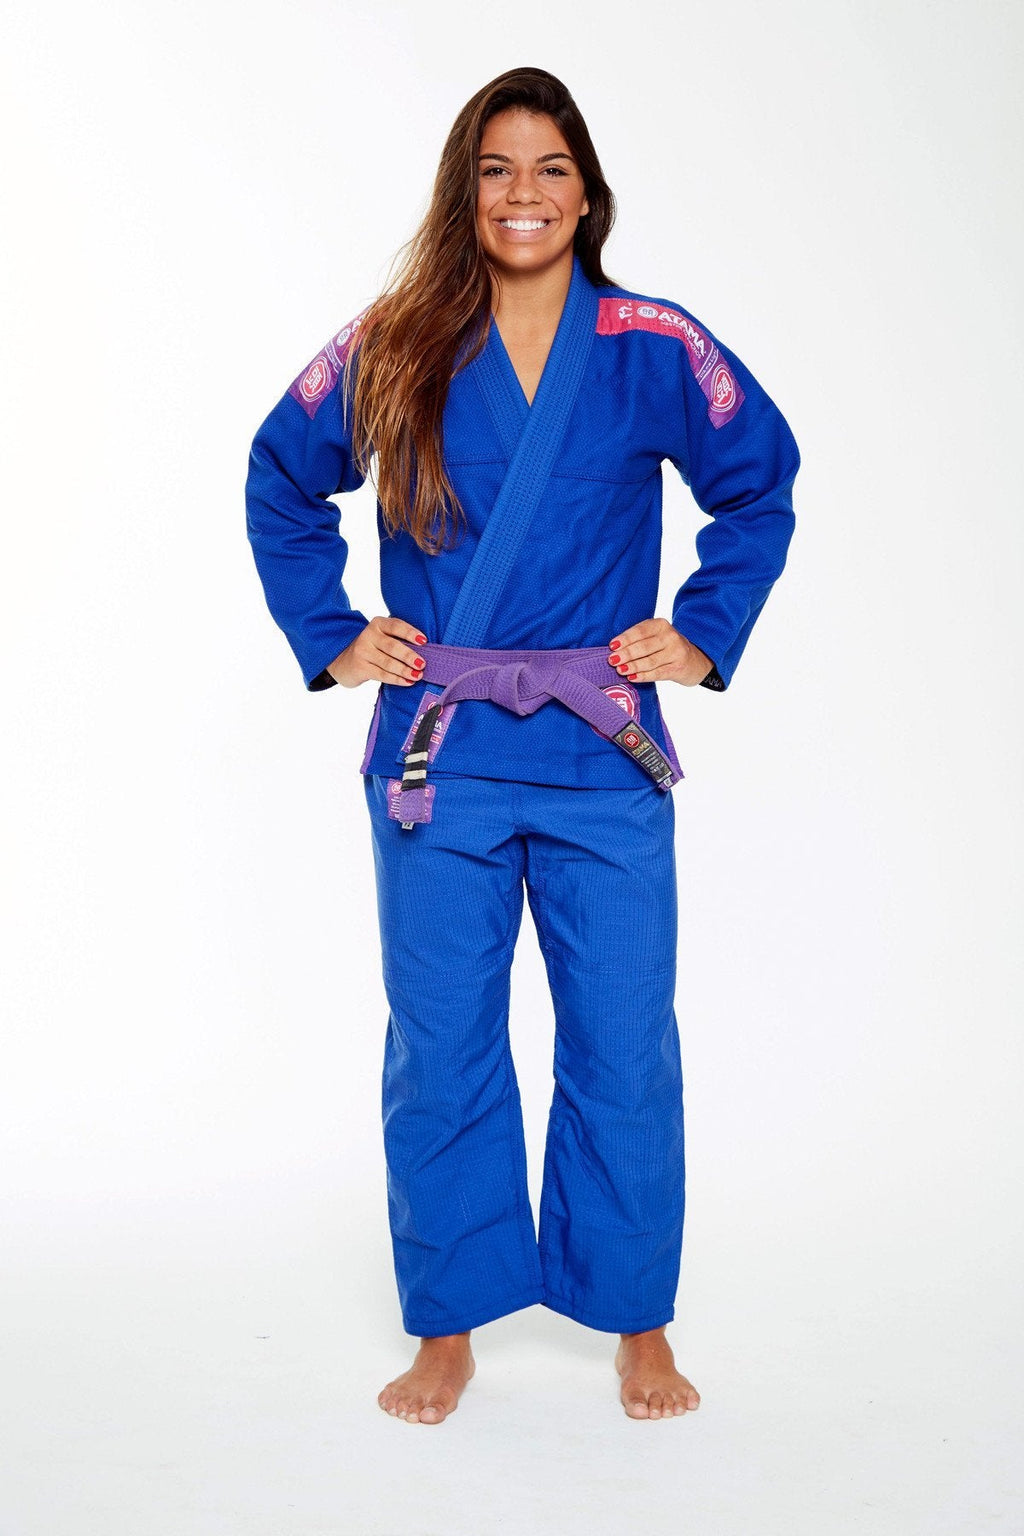 ATAMA BLUE ULTRA LIGHT BJJ KIMONO 2.0 (WOMEN) (GI)